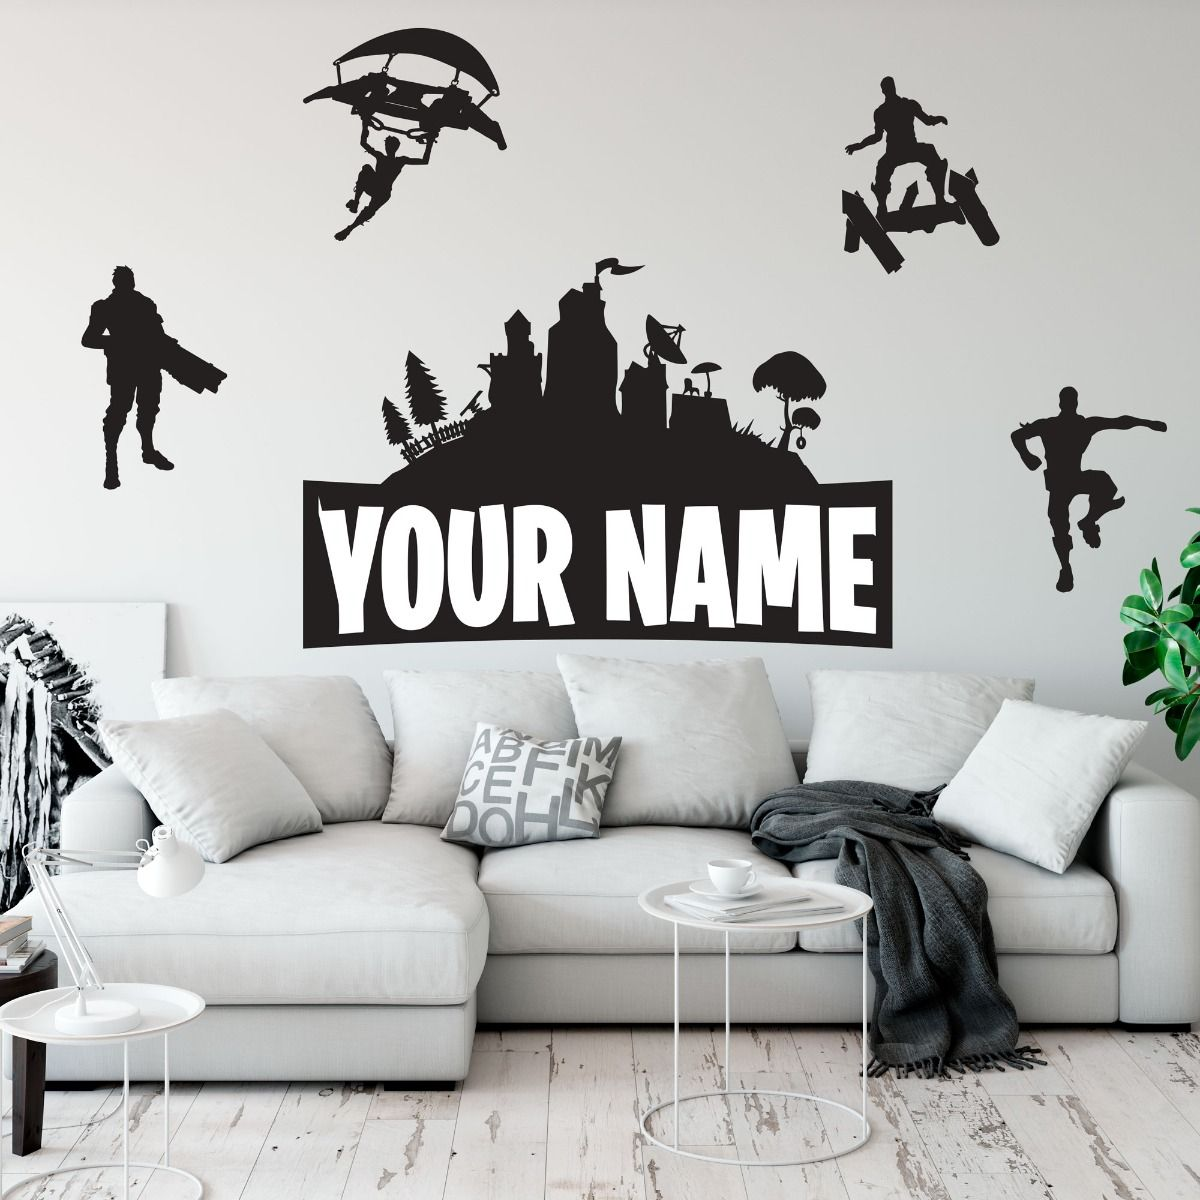 vinyl sticker wall vinyl decal childrens vinyl decal bedroom decor decal Personalized Name Decal home decor VARIOUS SIZES